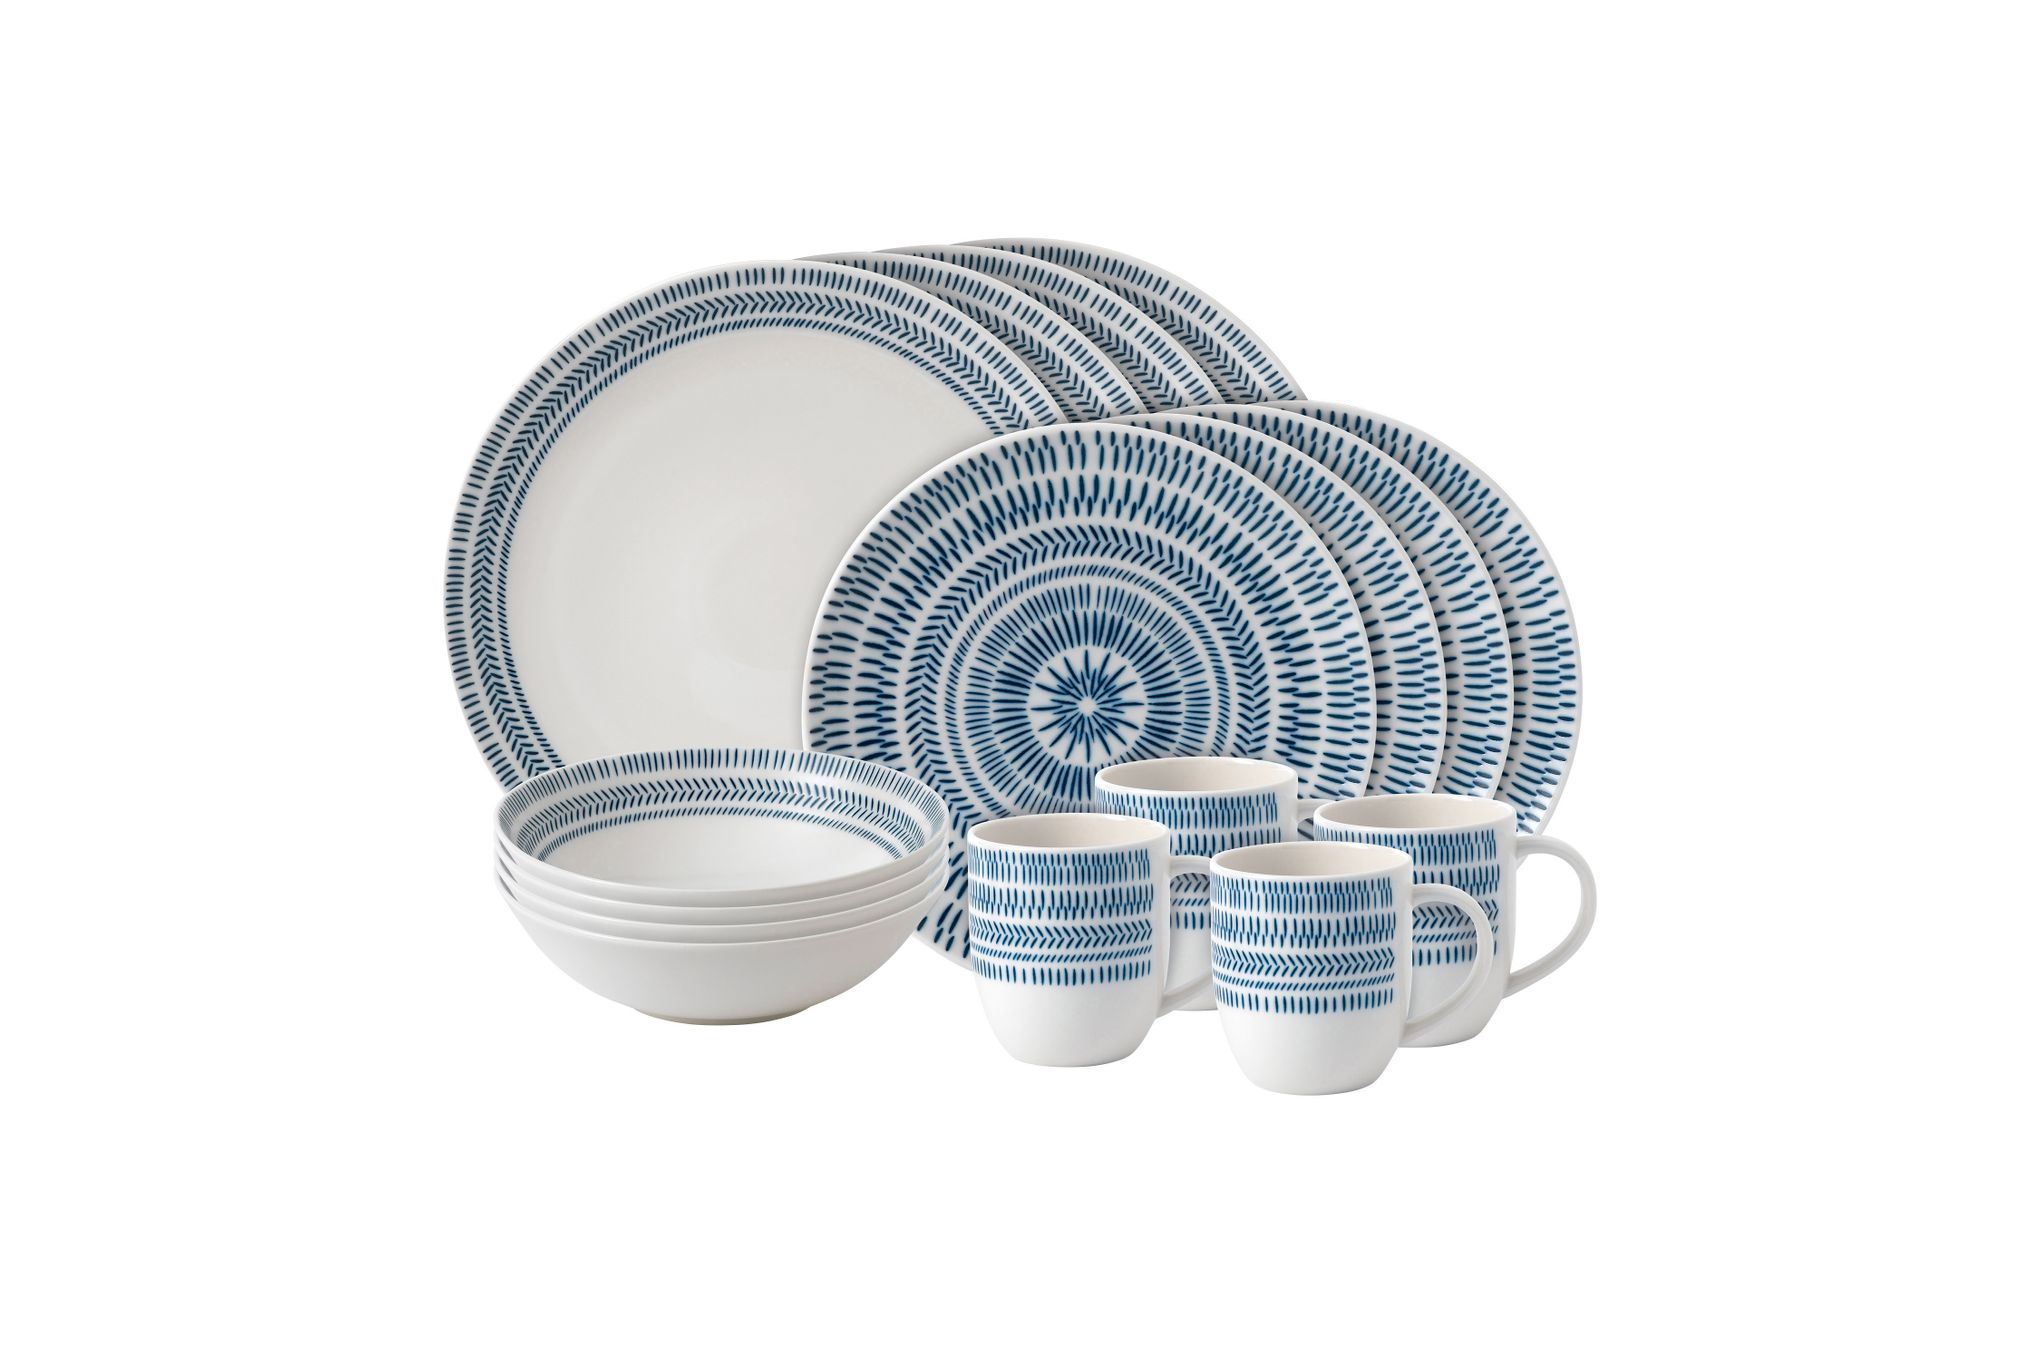 Ellen DeGeneres for Royal Doulton Dark Blue Chevron 16 Piece Set Dark Blue Chevron thumb 1